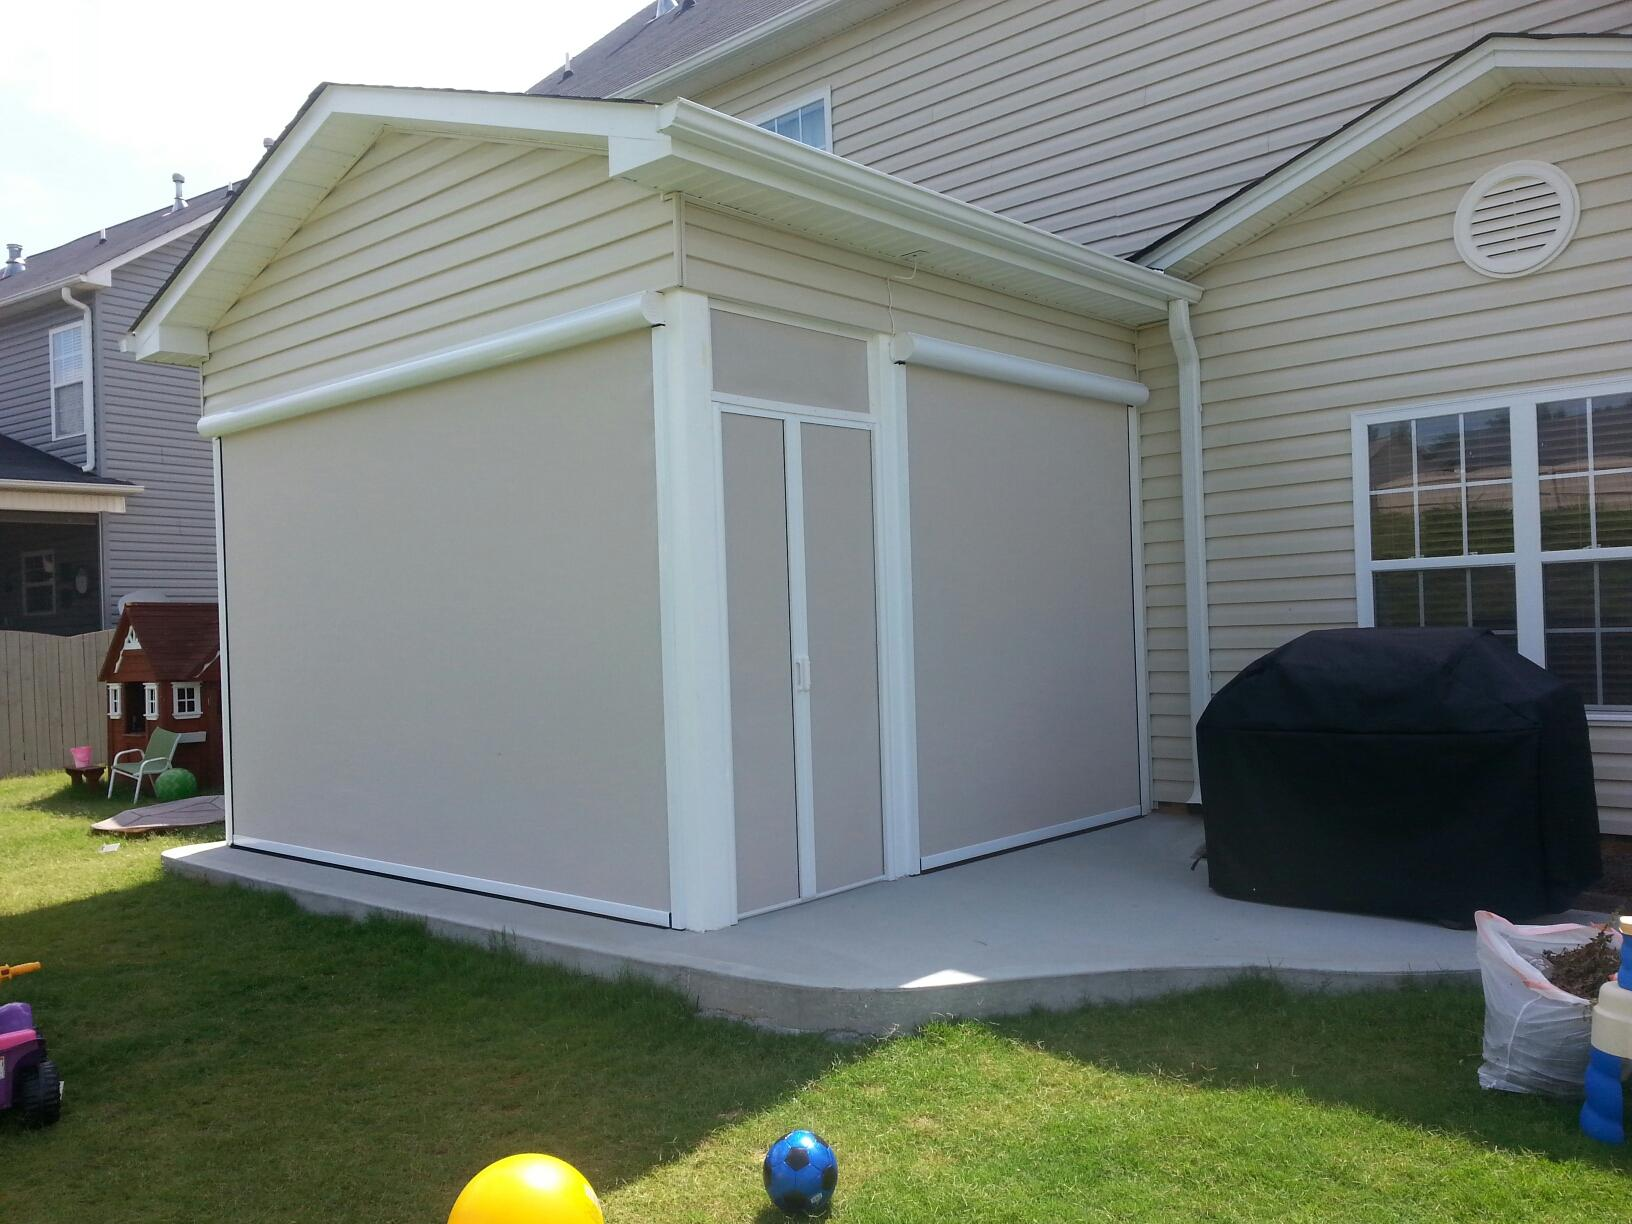 Customers Chose 85% Block Pebble Colored Solar Screens By ClearView To  Enclose Their New Patio Porch. Create This Same Look In Your SC Backyard.